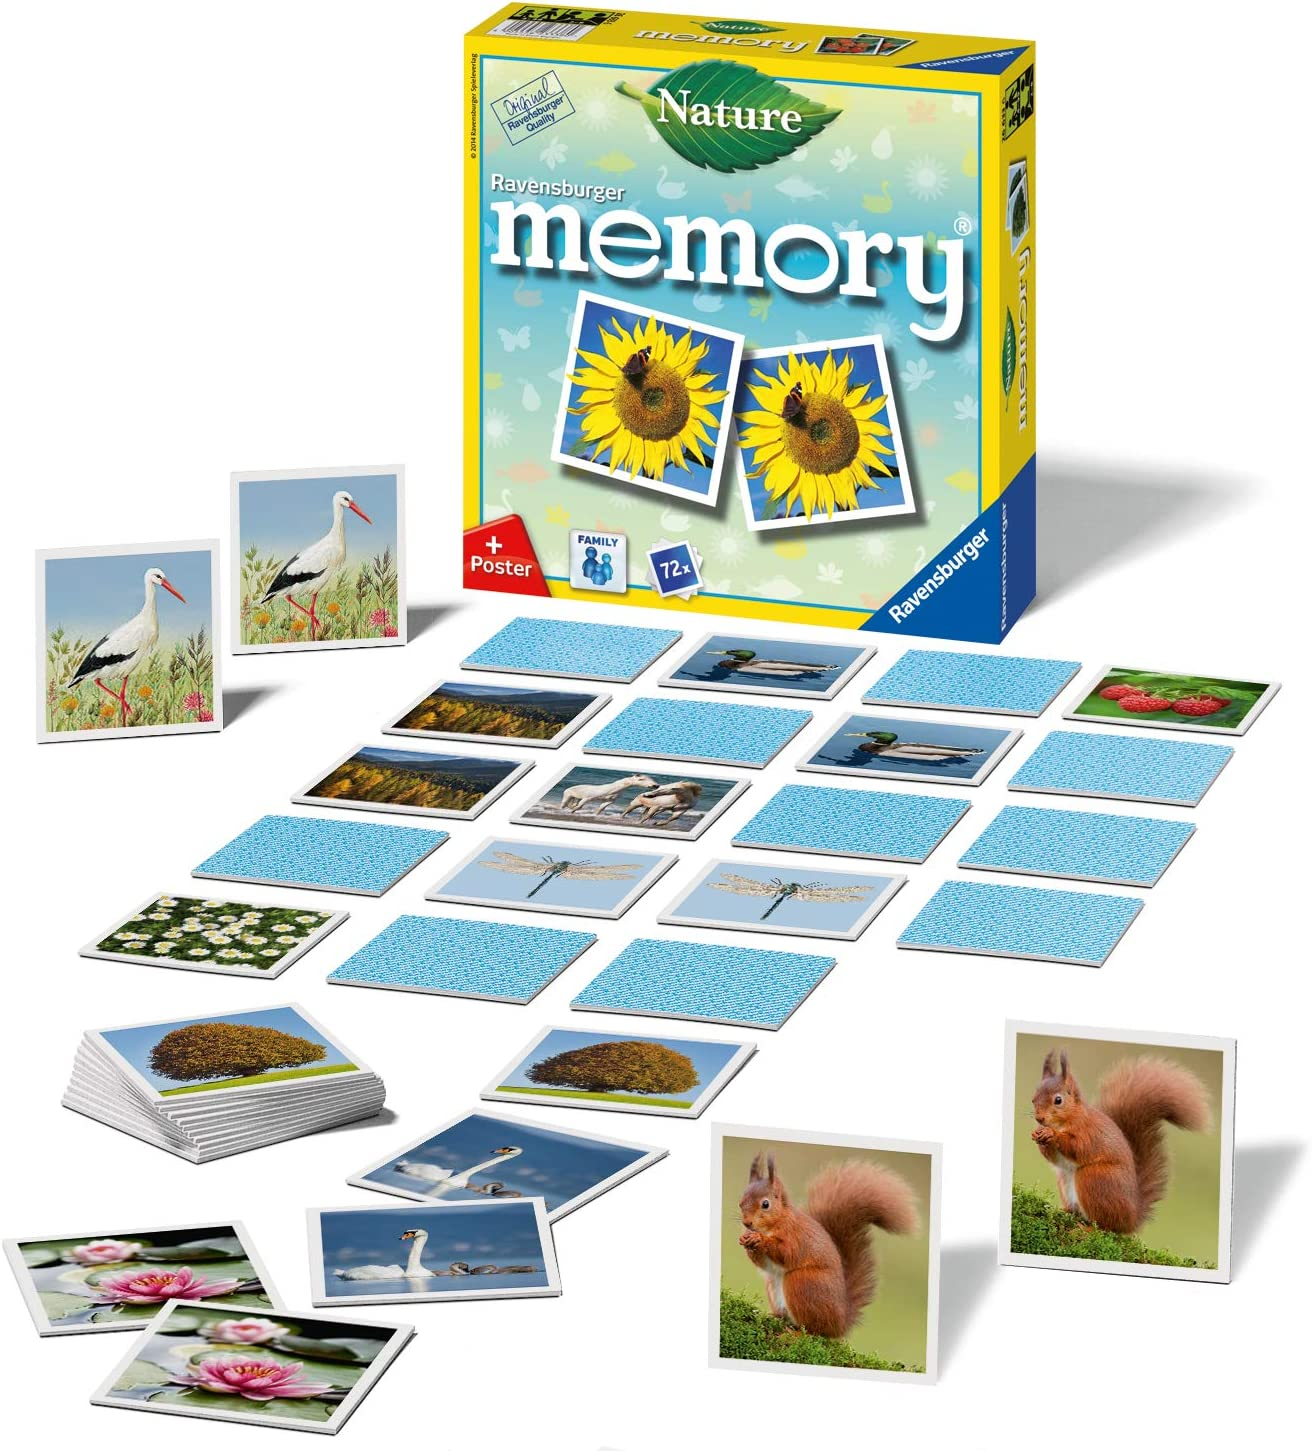 Ravensburger - Memory Naturaleza (Ravensburger 26633): Hurter, William H.: Amazon.es: Juguetes y juegos